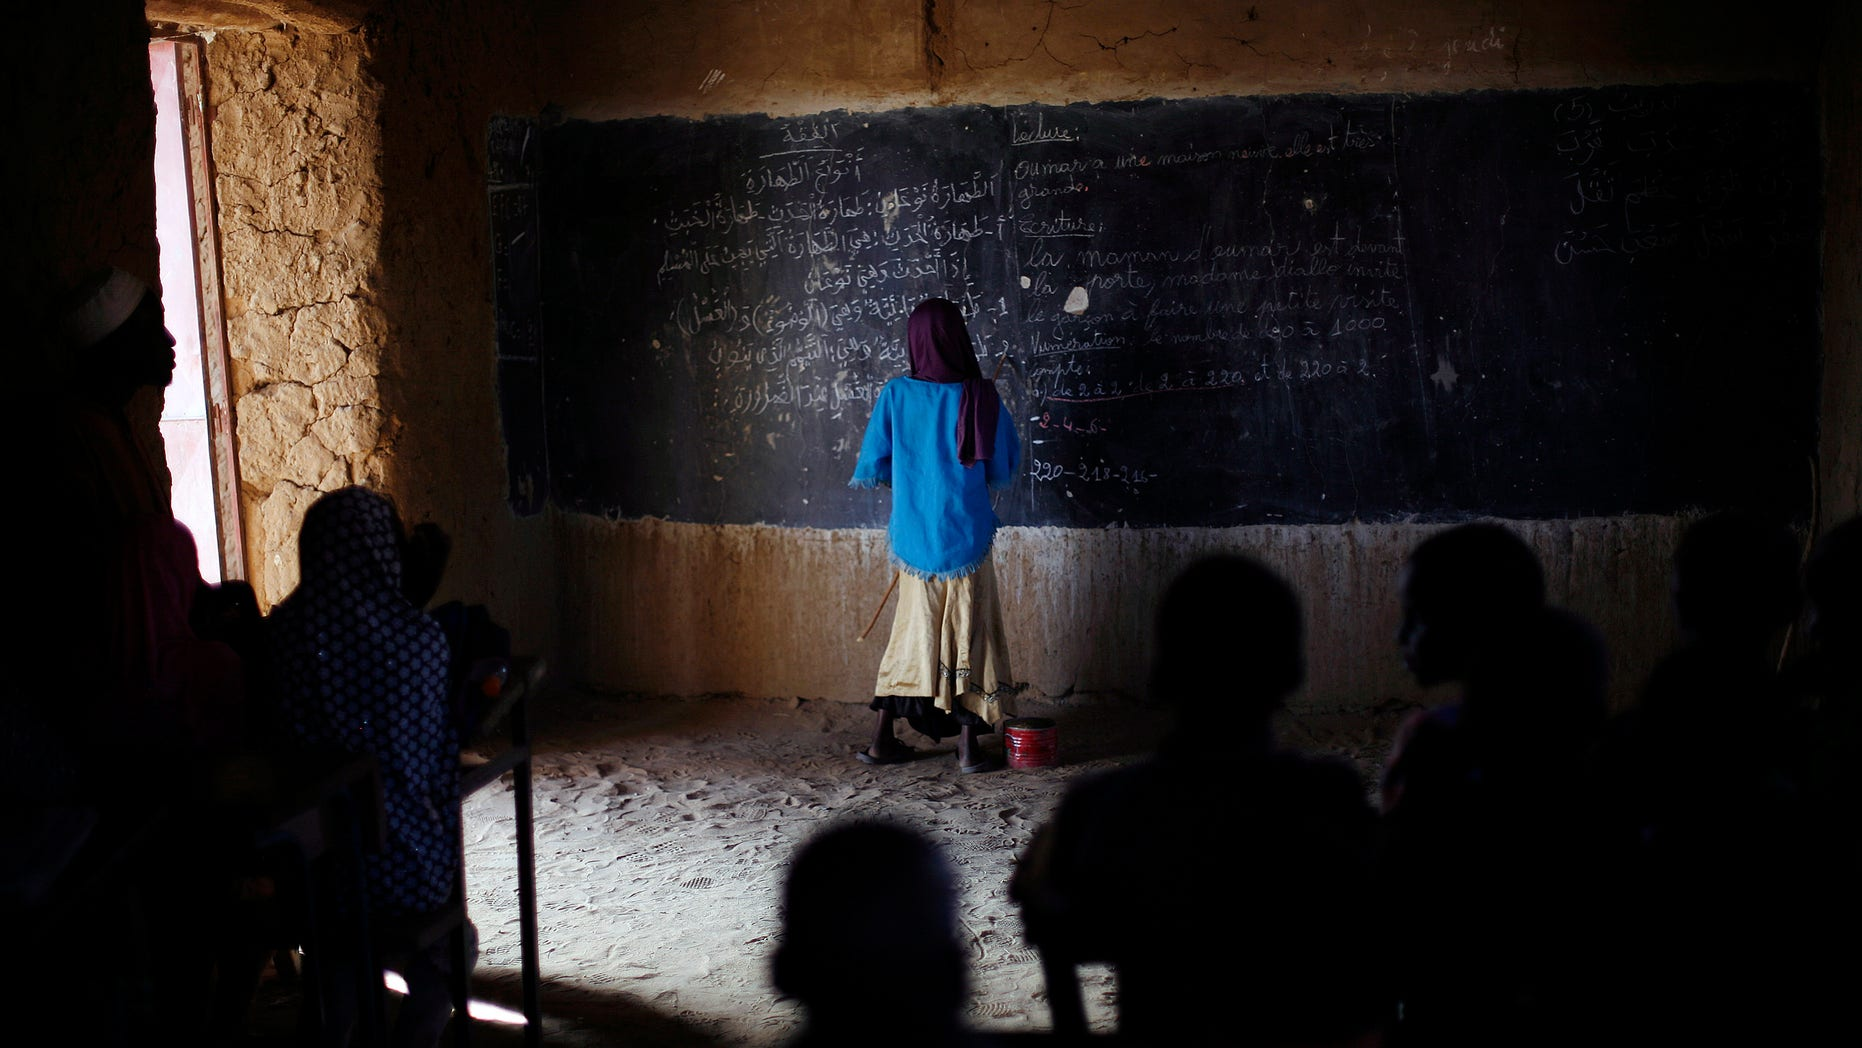 Feb. 18, 2013: A Malian schoolgirl stands at the blackboard as schools reopen in Gao, northern Mali.